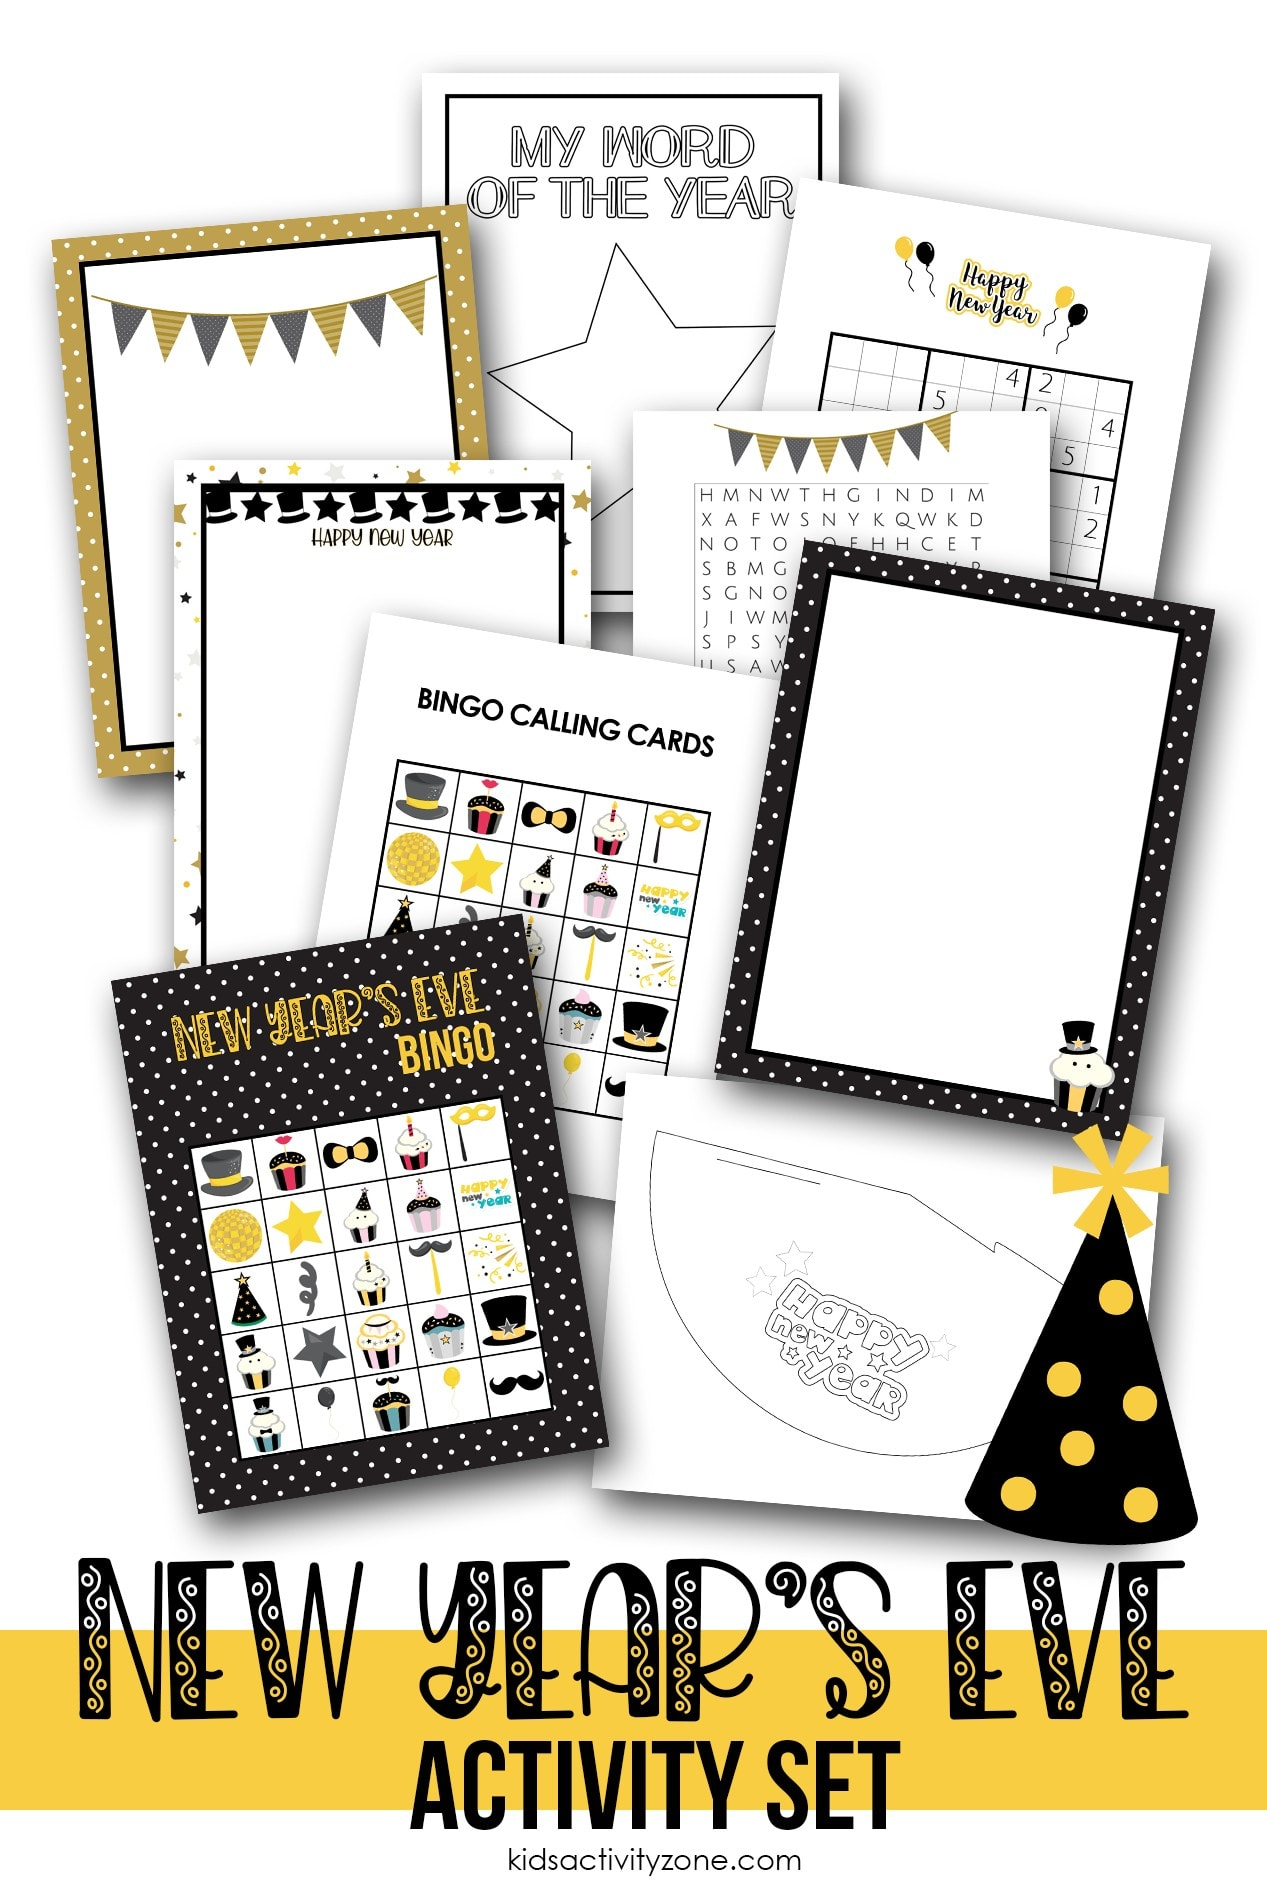 Pinterest collage image of New Year' Eve printable activities